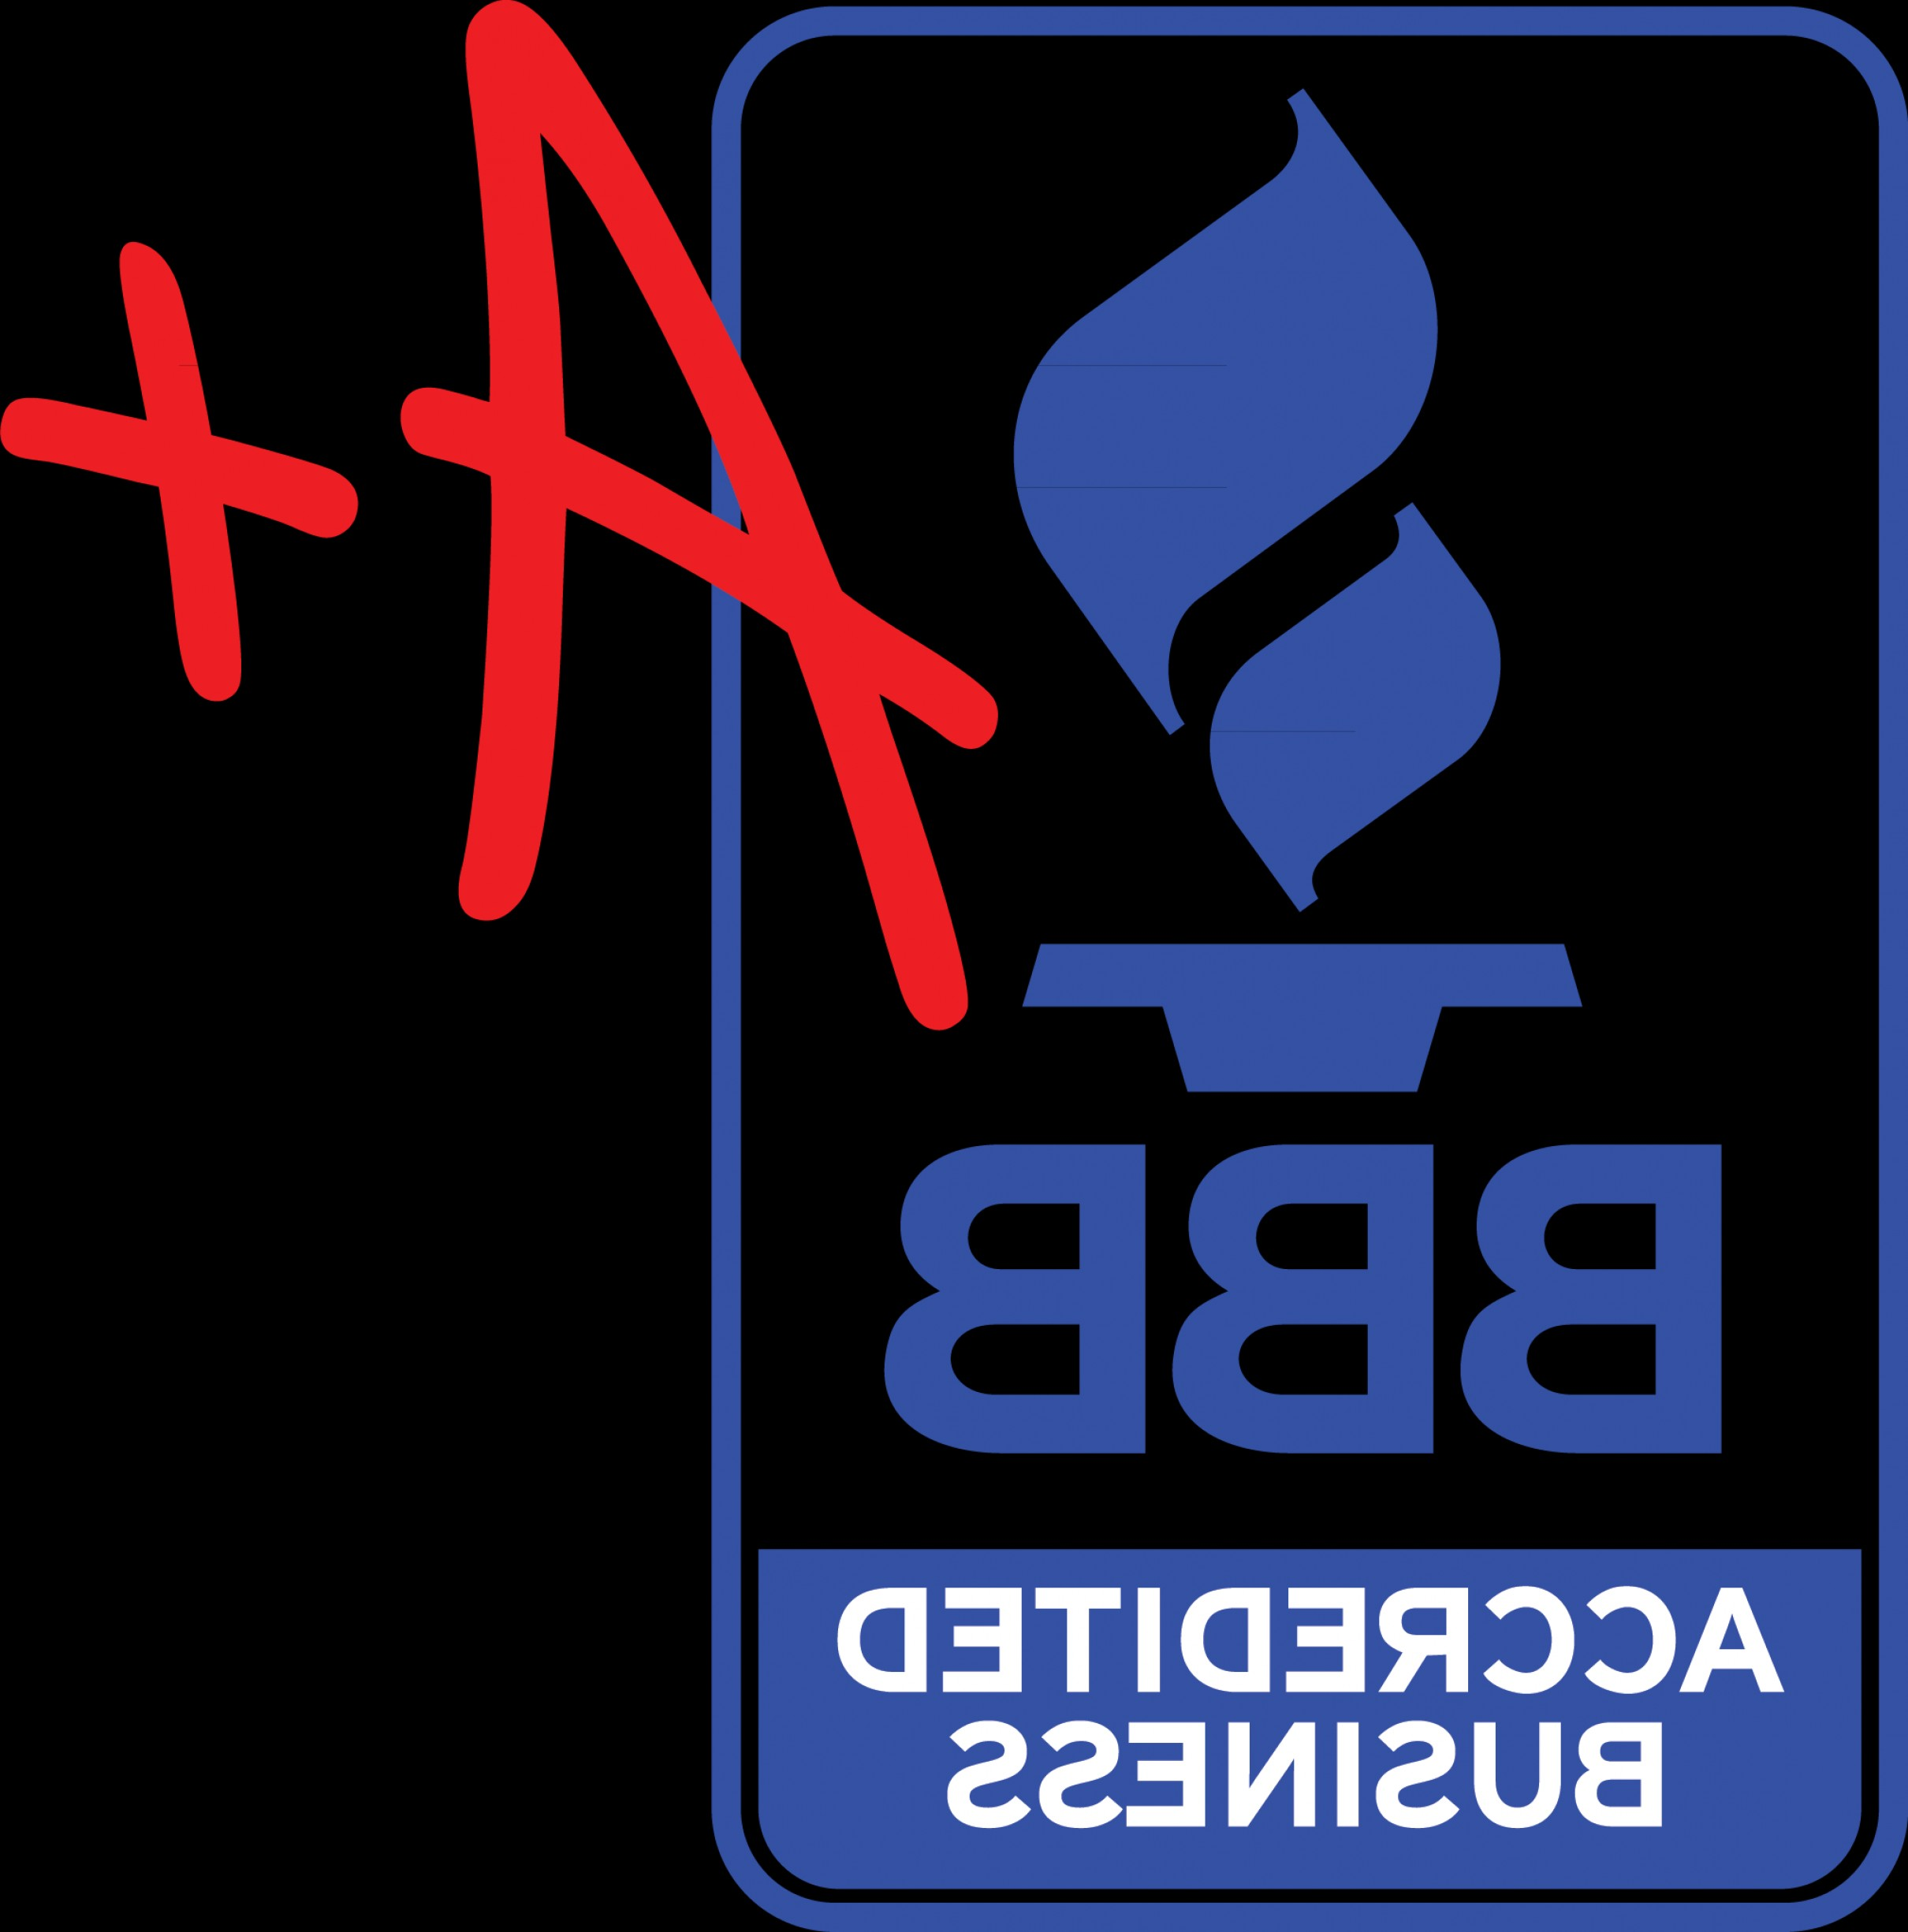 BBB Accredited Business Logo Vector: Why Choose A Bbb Accredited Car Service